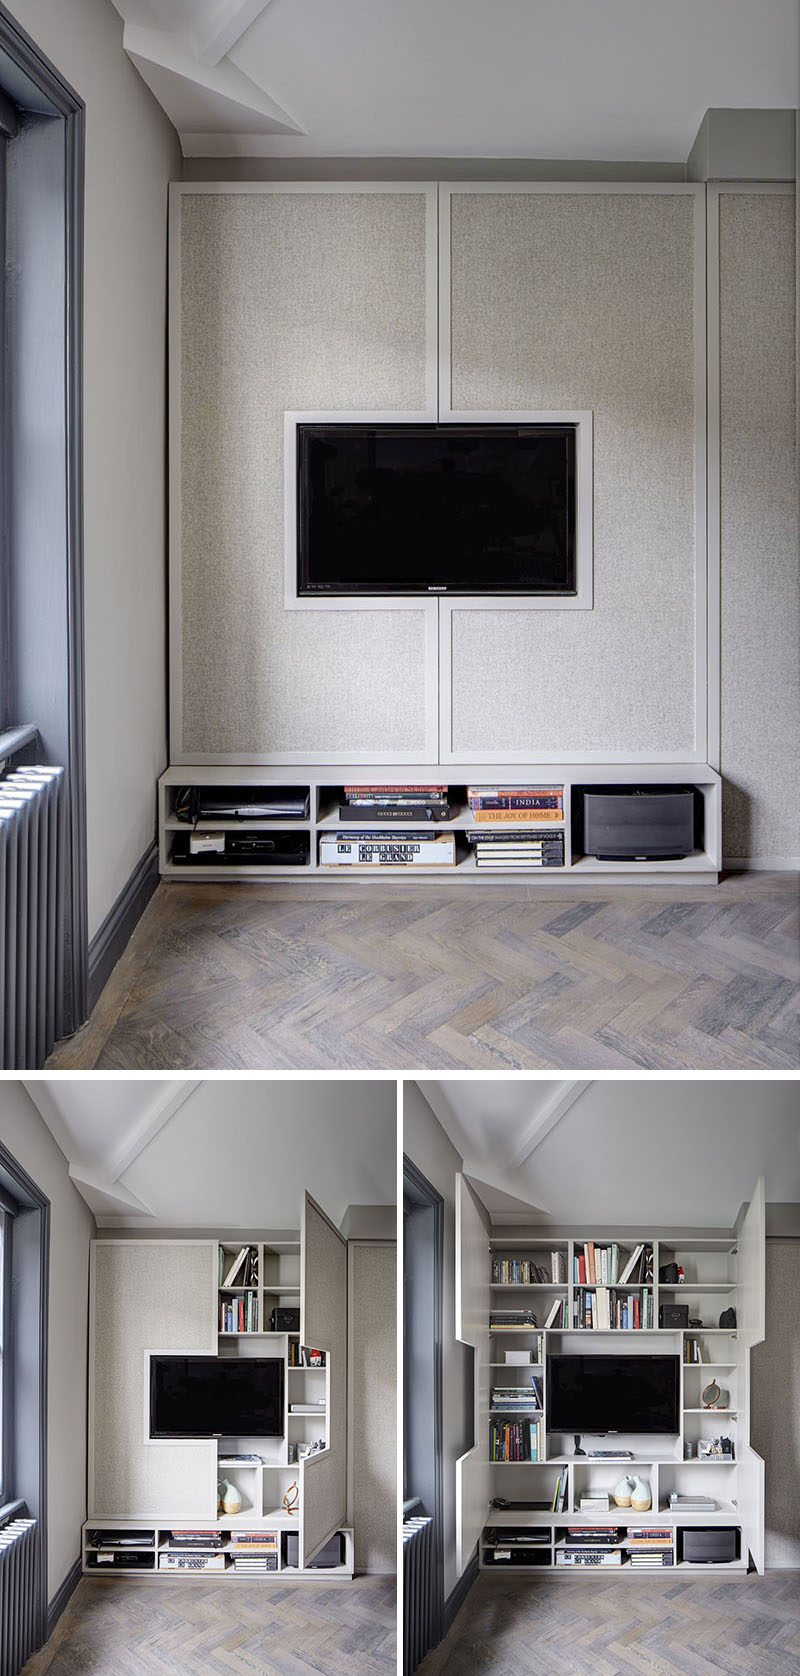 8 TV Wall Design Ideas For Your Living Room // Although This TV Appears To